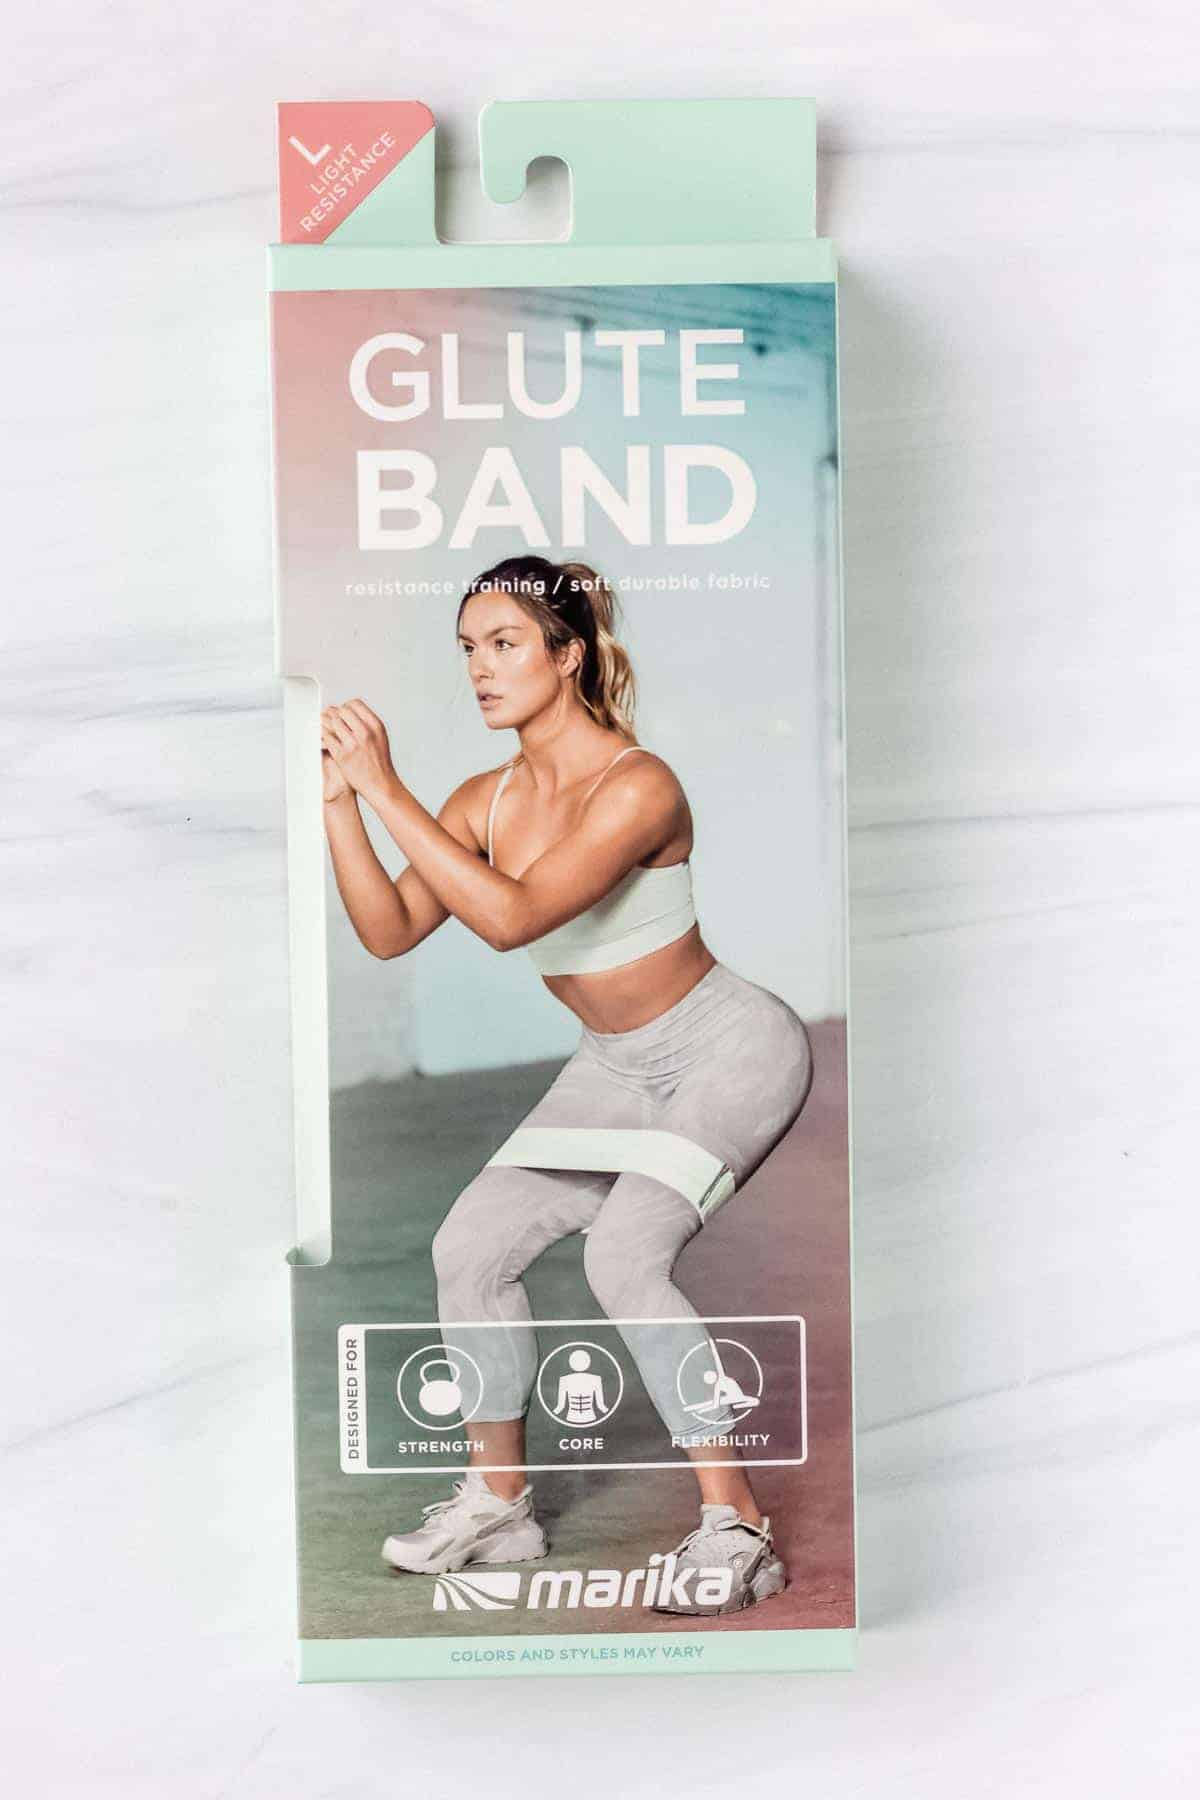 Marika glute band package